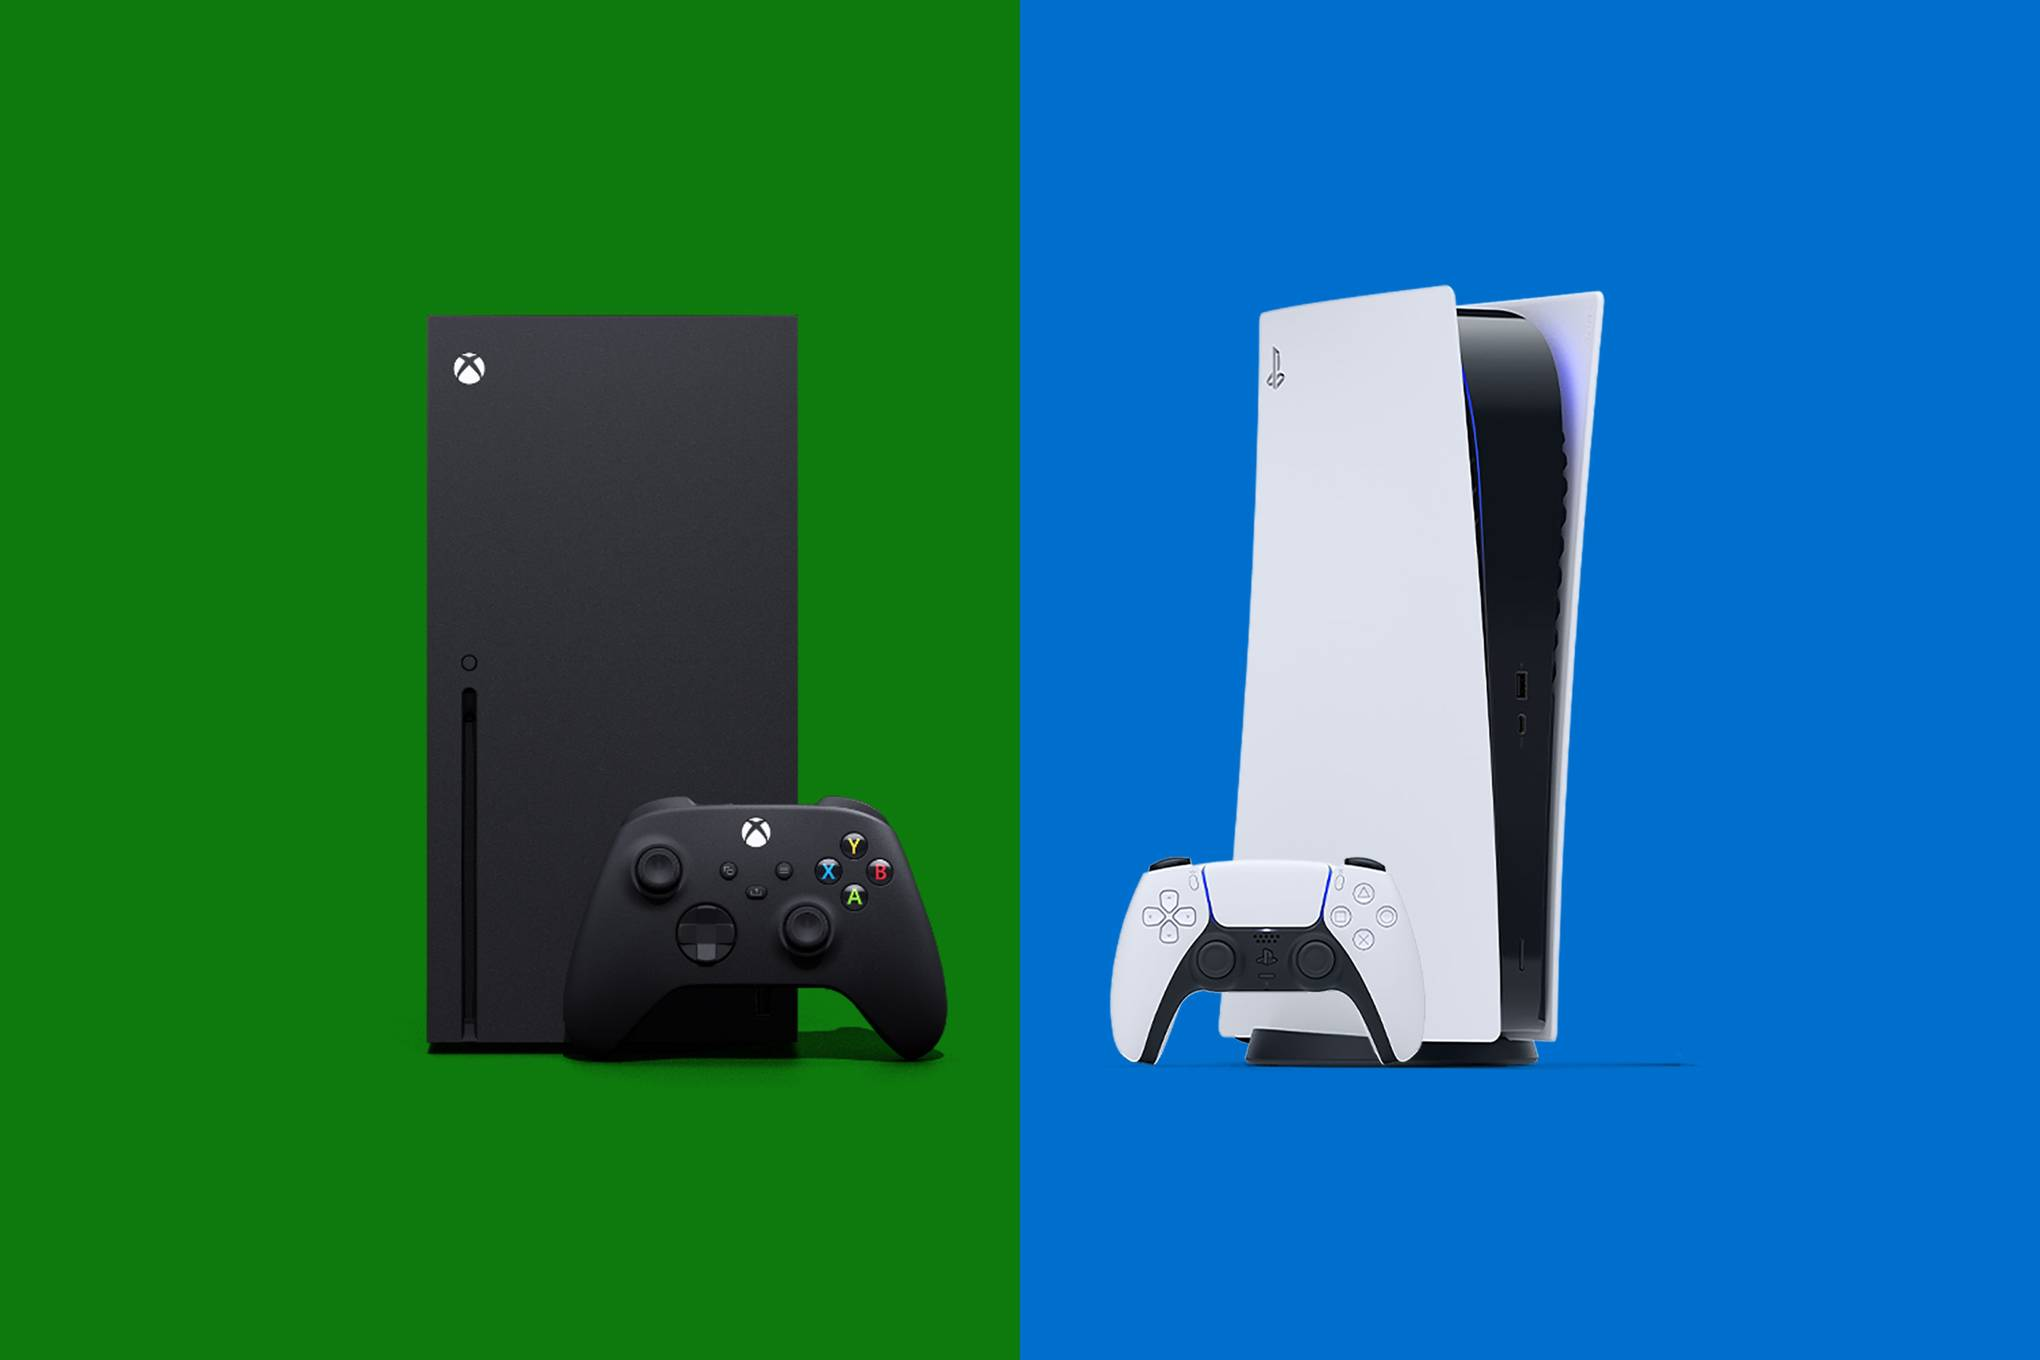 Playstation 5 a Xbox Series X